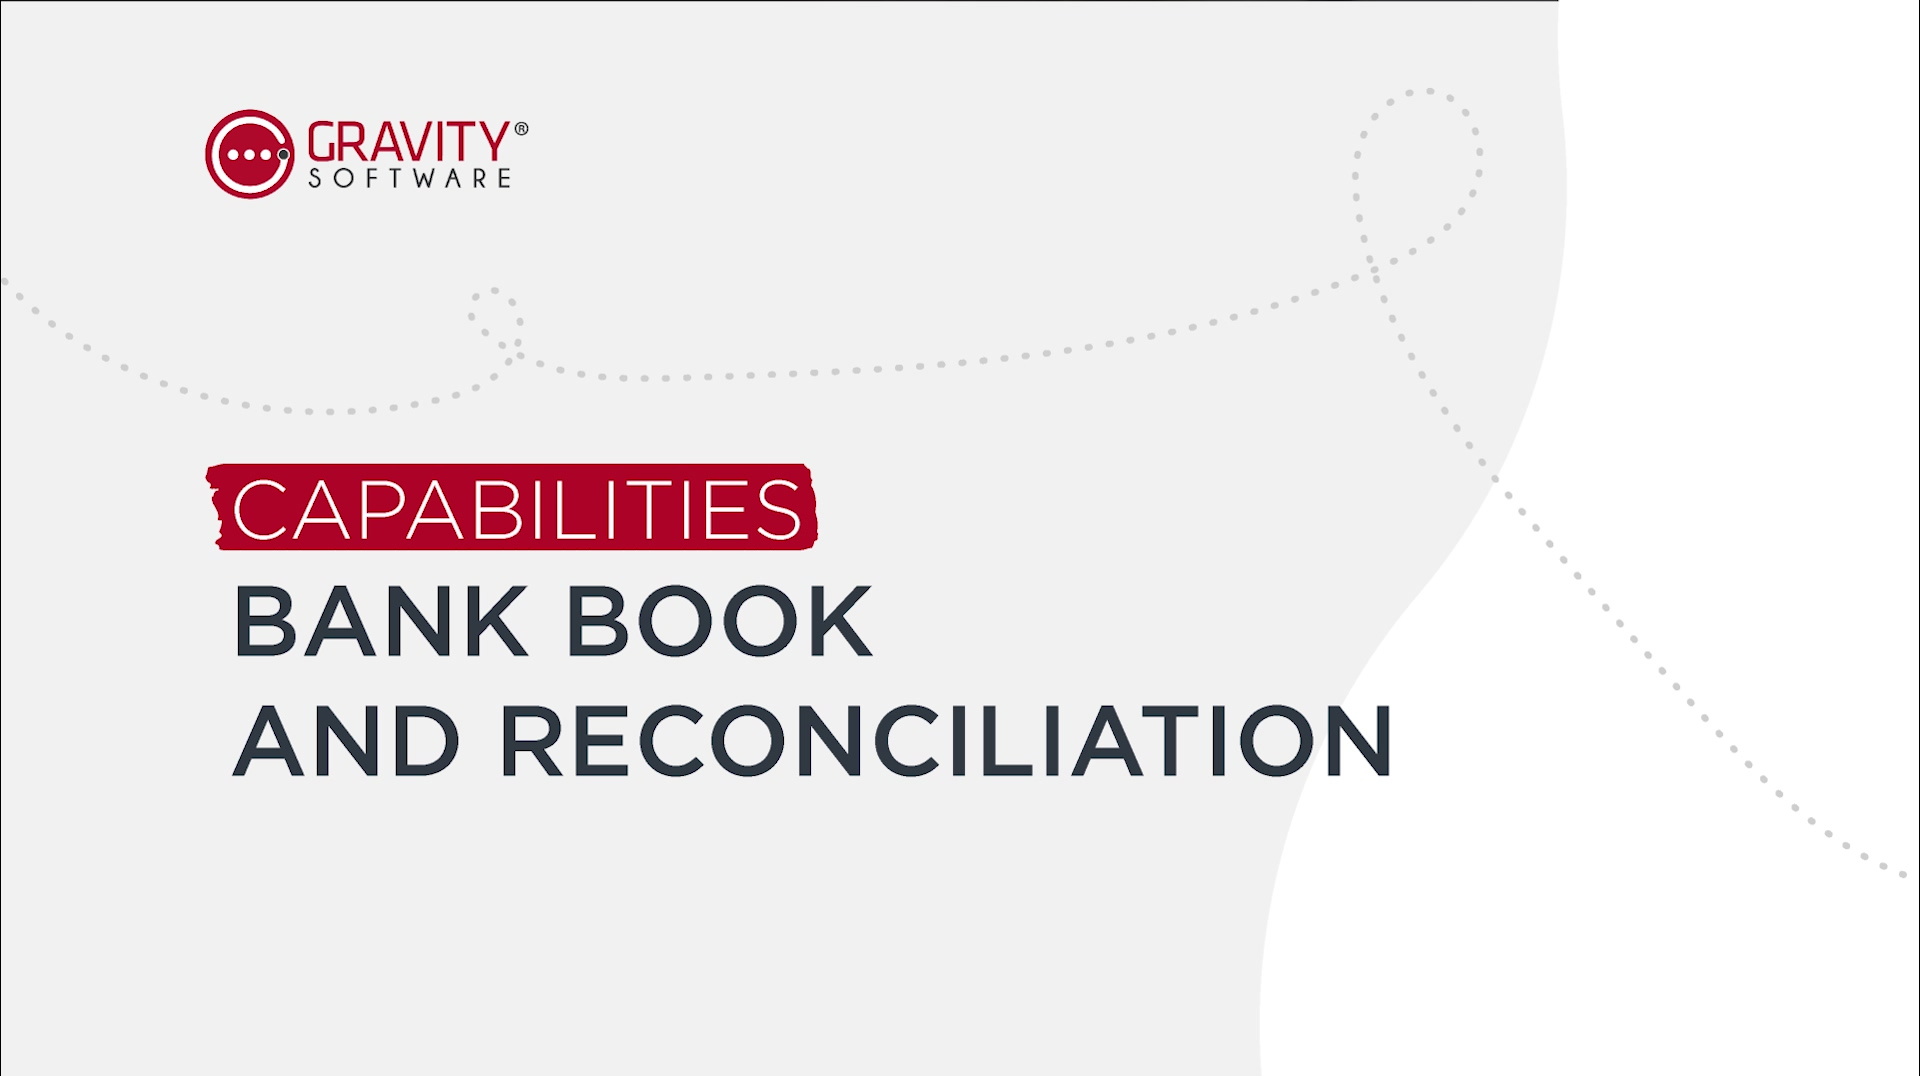 Graviity Software  Bank Book and Reconciliation Capabilities